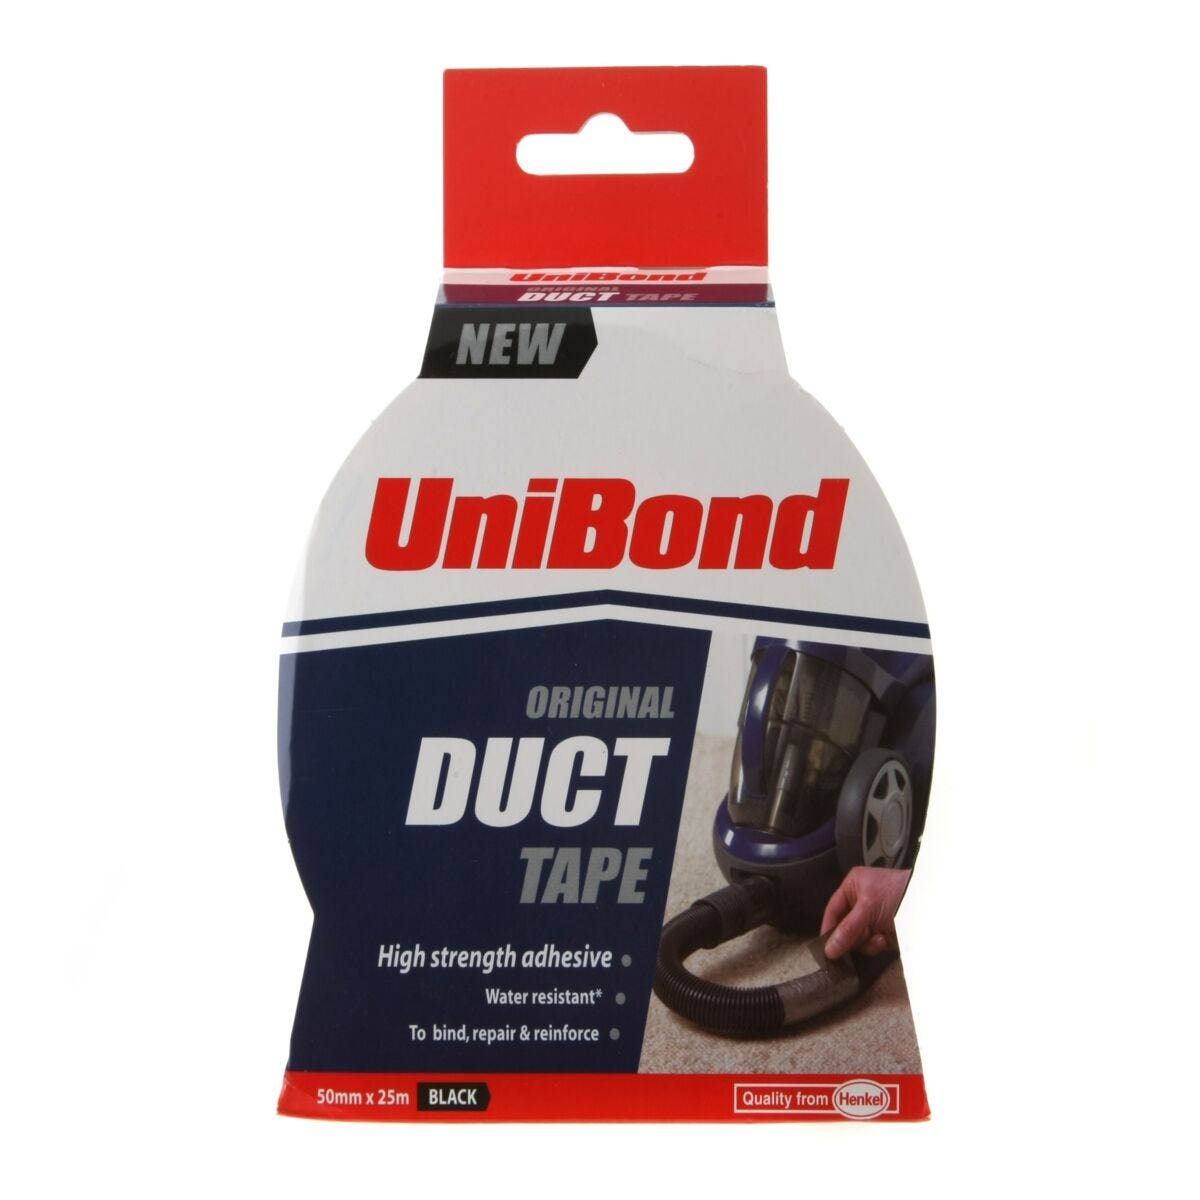 Unibond Original Duct Tape 50mm x 25m